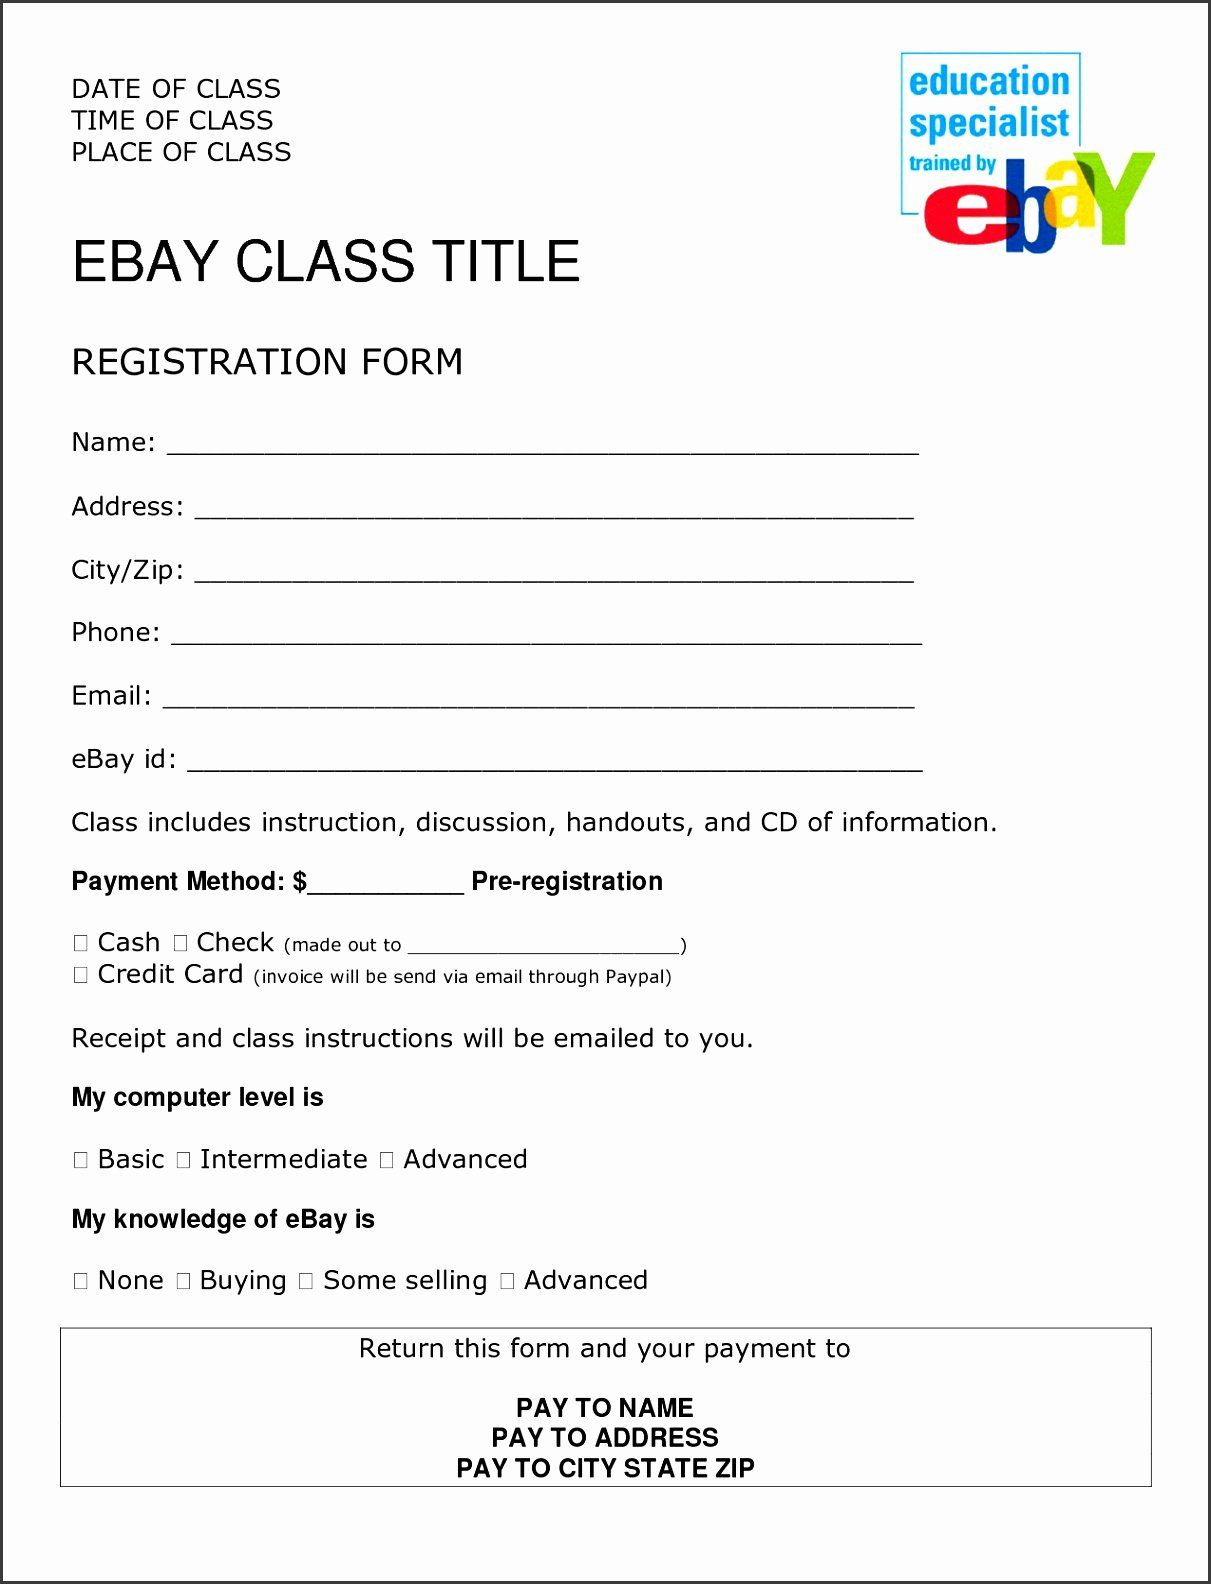 Registration Form Template Microsoft Word Best Of 7 Form Template Word Mac Sampletemplatess Sampletemp Invoice Template Word Registration Form Invoice Template